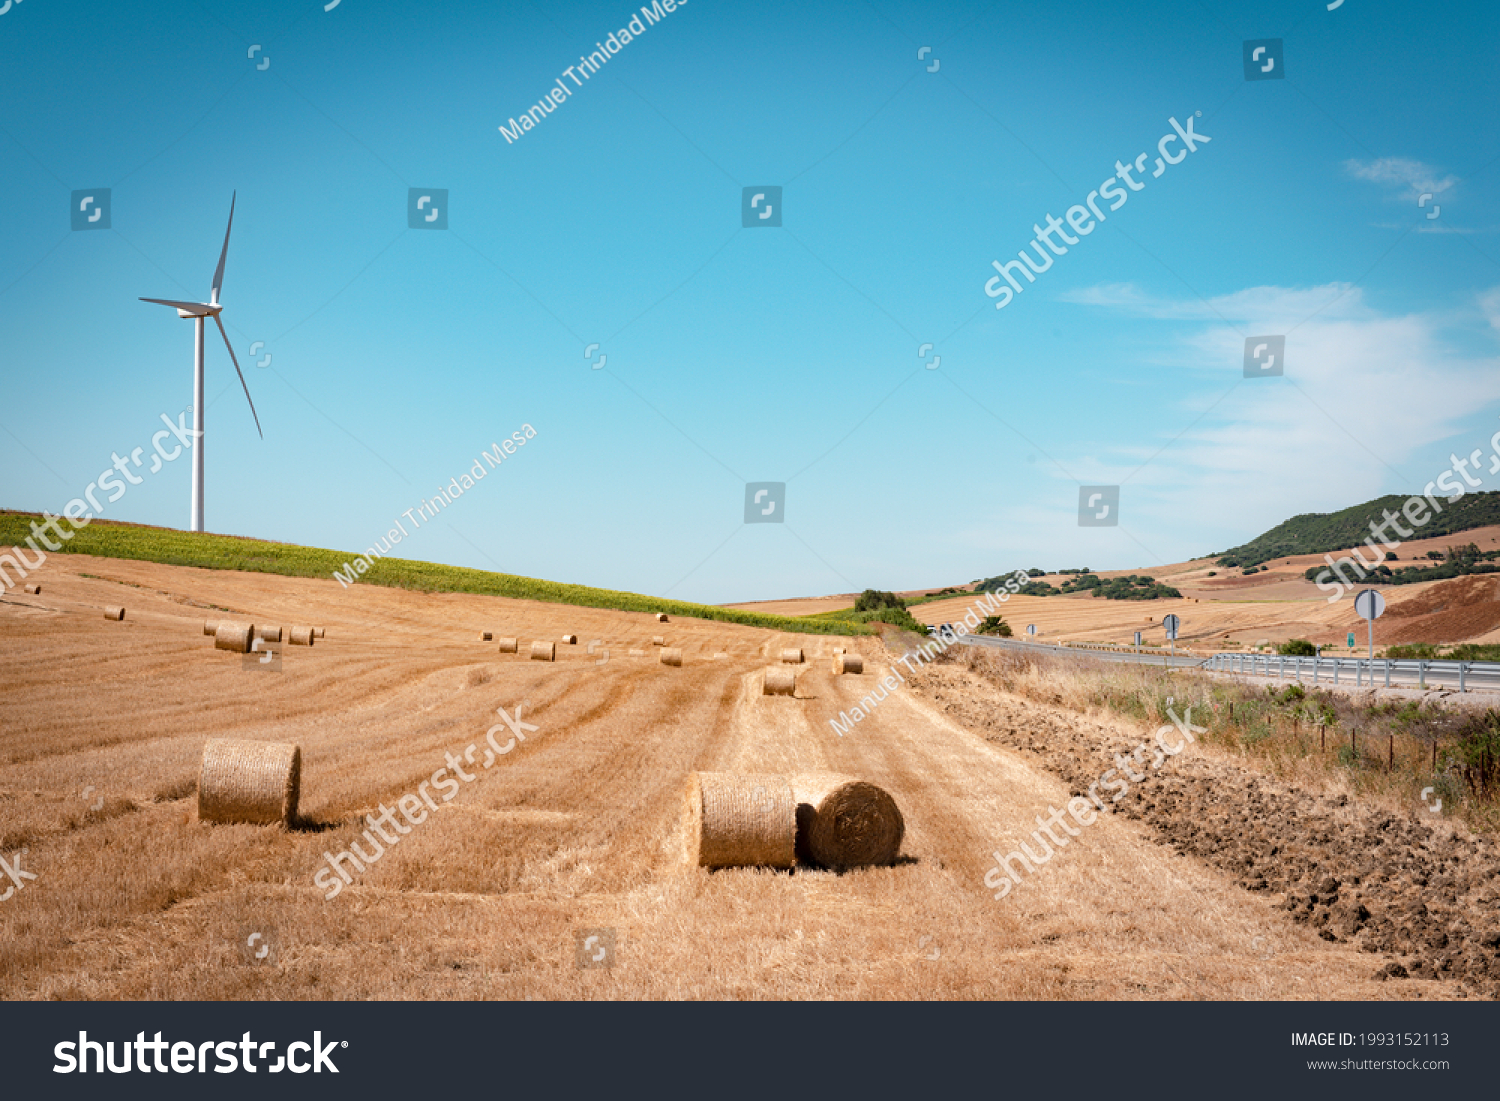 Field with round straw bales and a wind turbine in the background